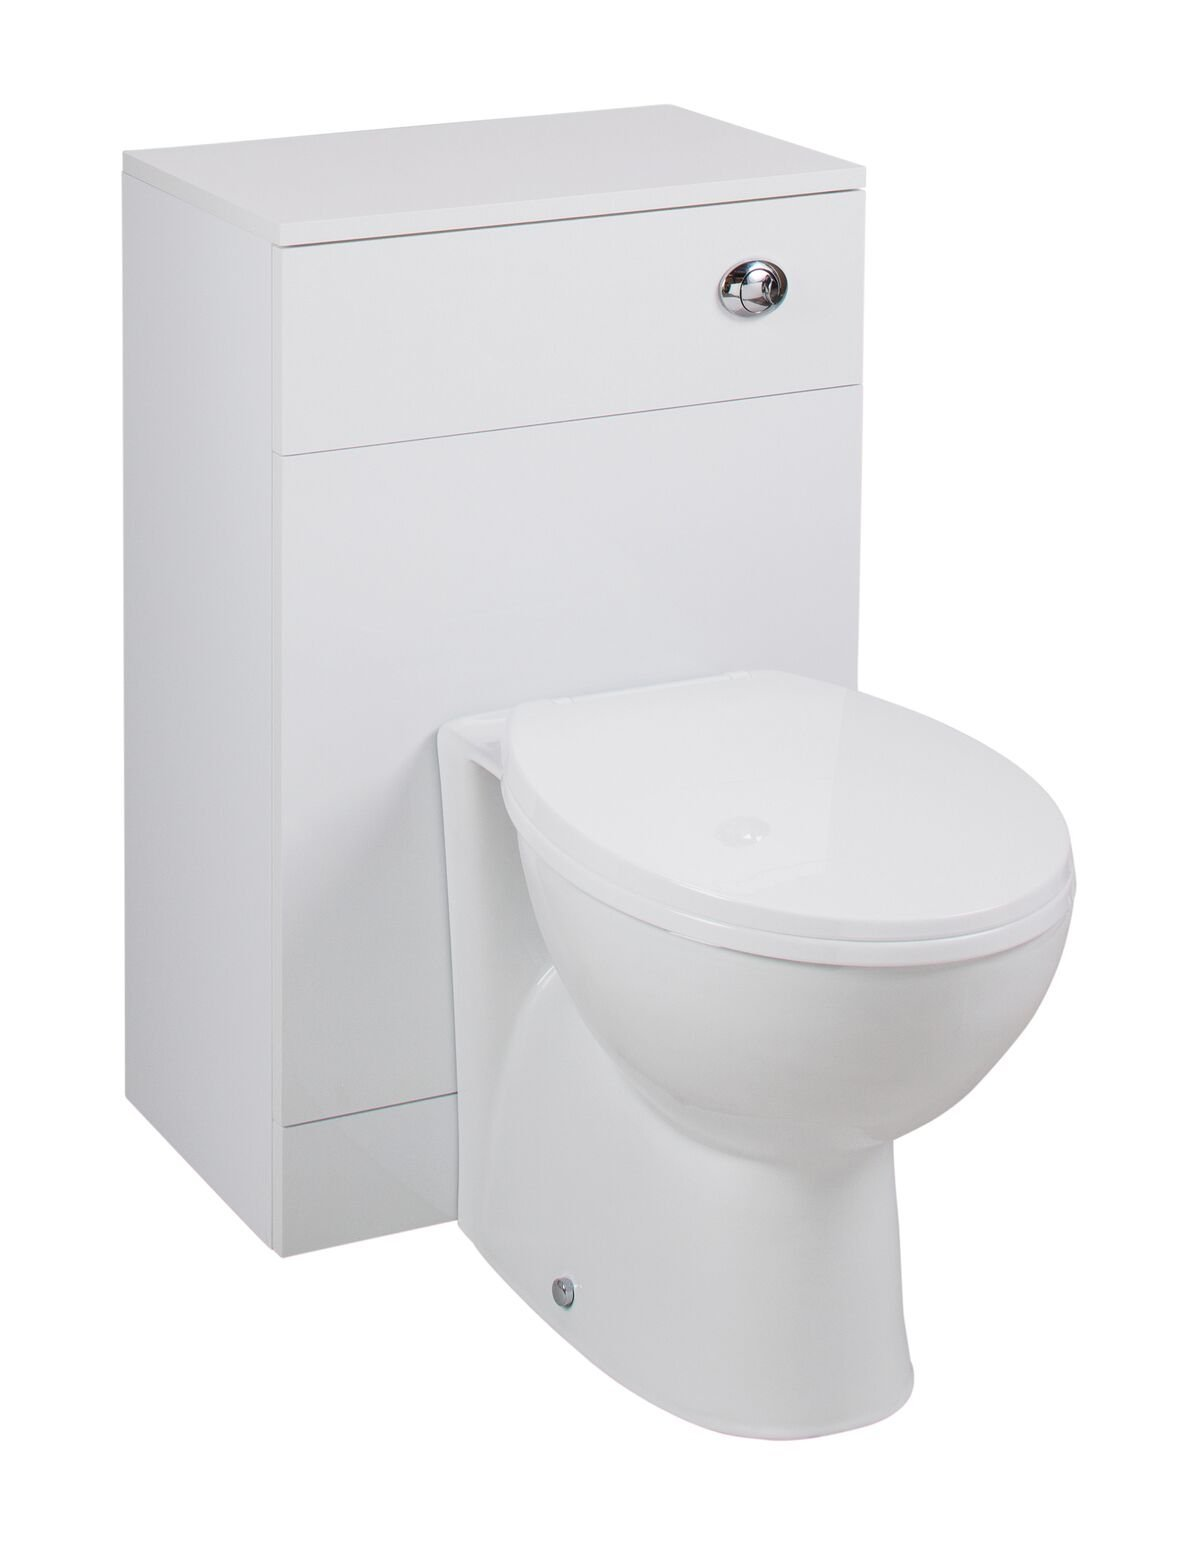 Cassellie Kass WC Unit with Churwell Back to Wall Pan & Seat - 500mm Wide x 850mm Deep - White